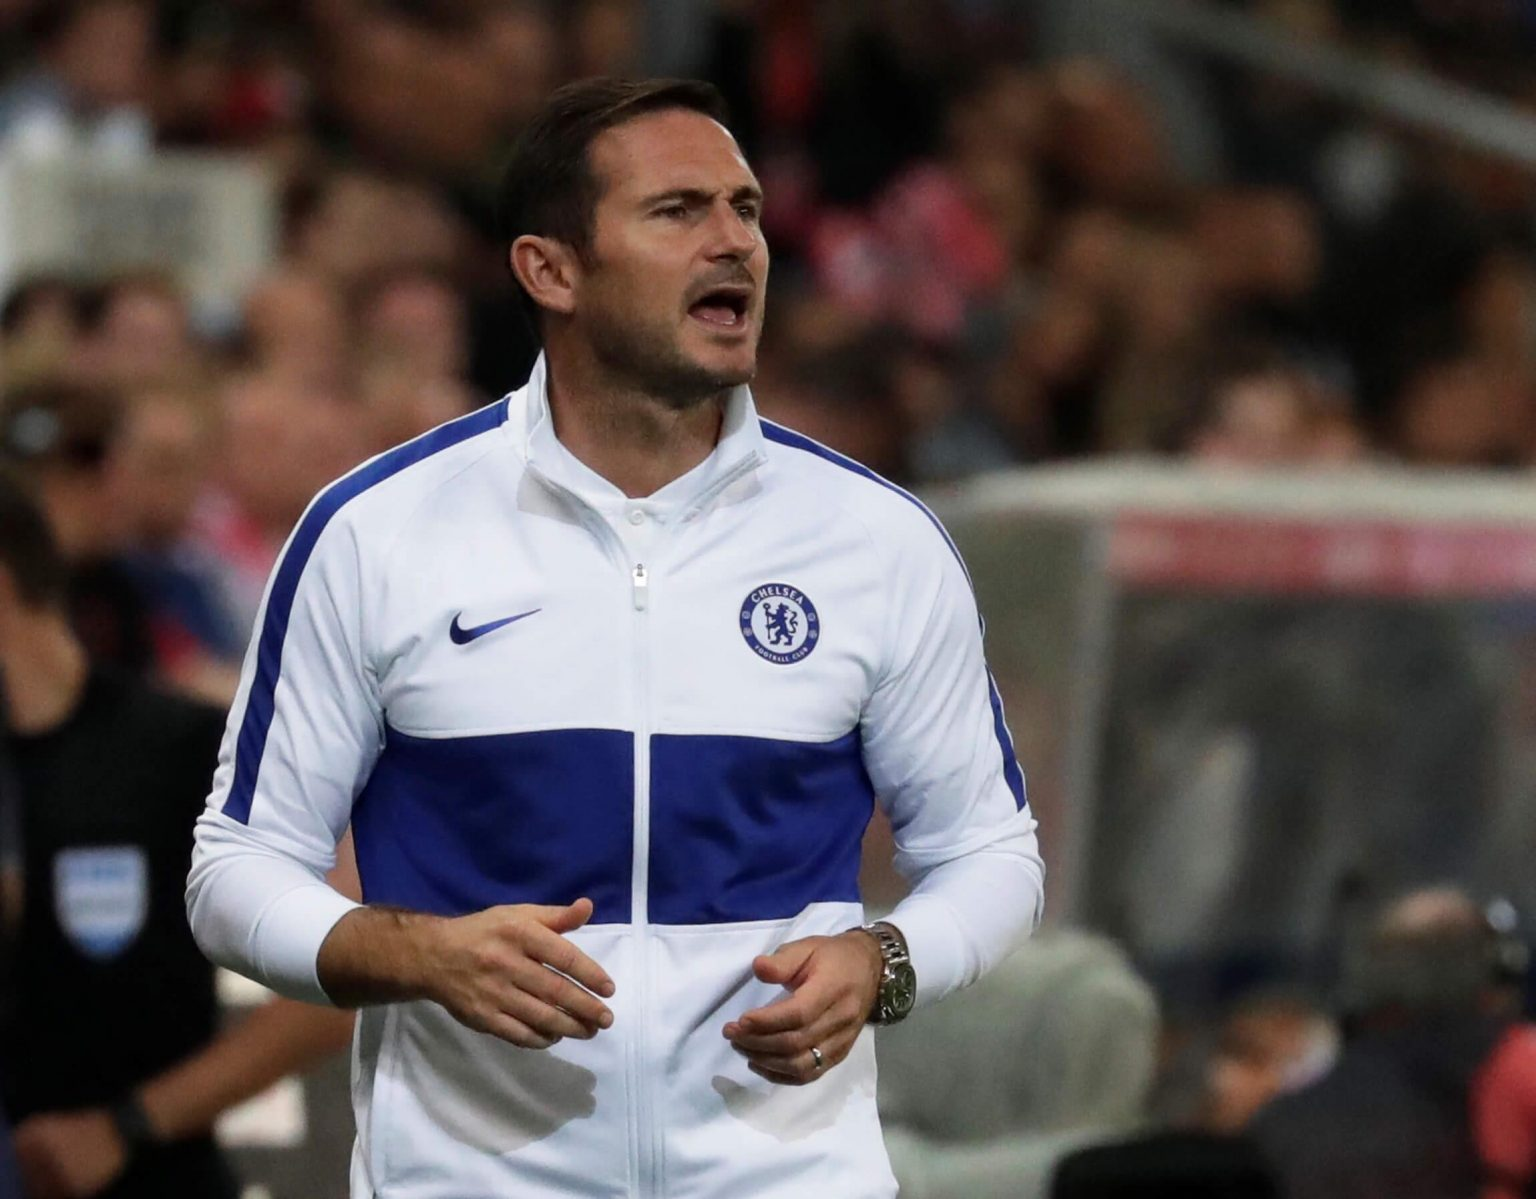 Chelsea vs Krasnodar: Lampard singles out Two Players after 1-1 Draw